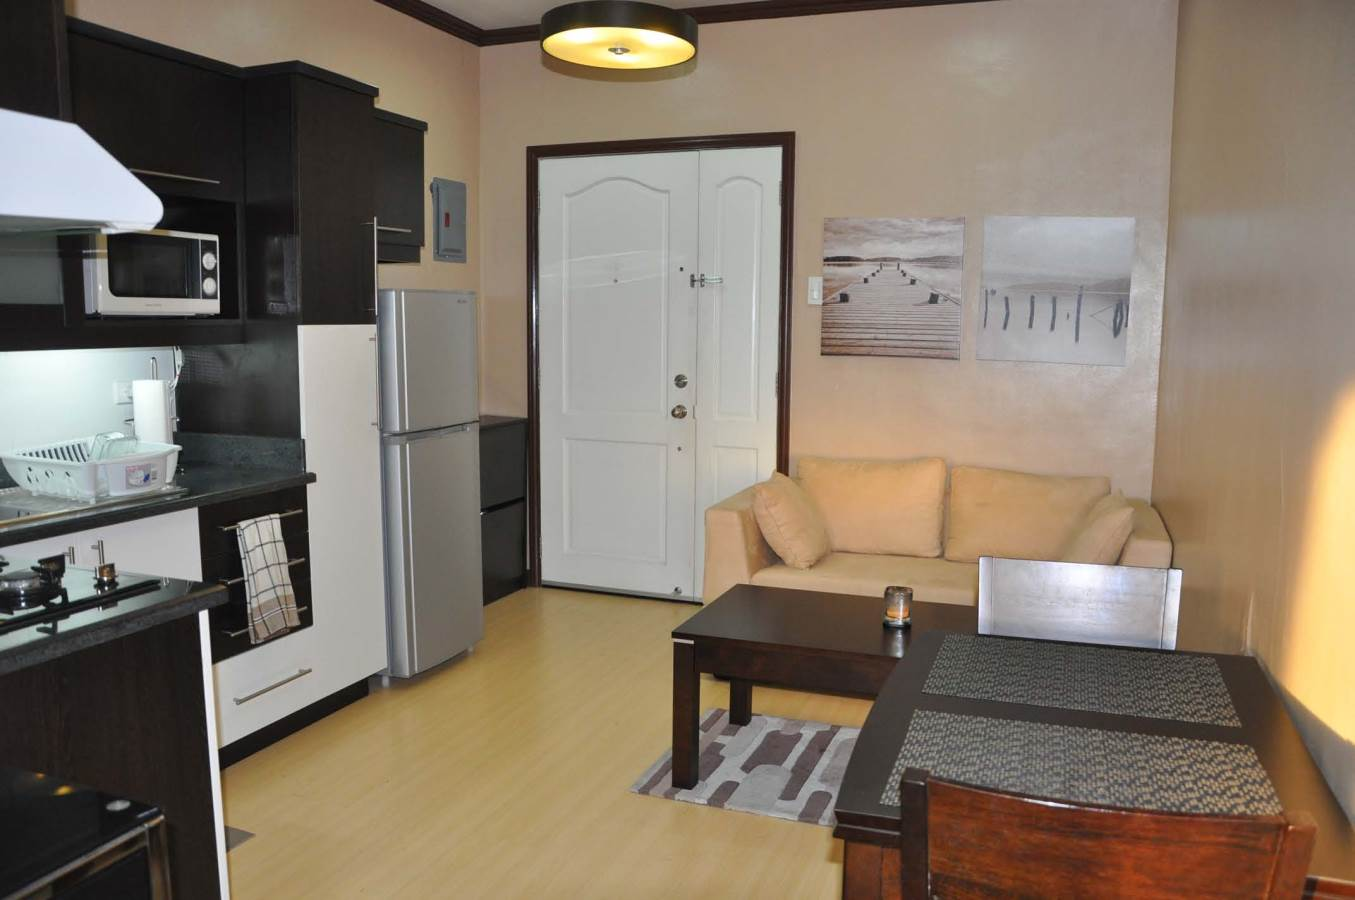 Palaciego uno fully furnished 1 bedroom condo unit for for Interior designs for condo units